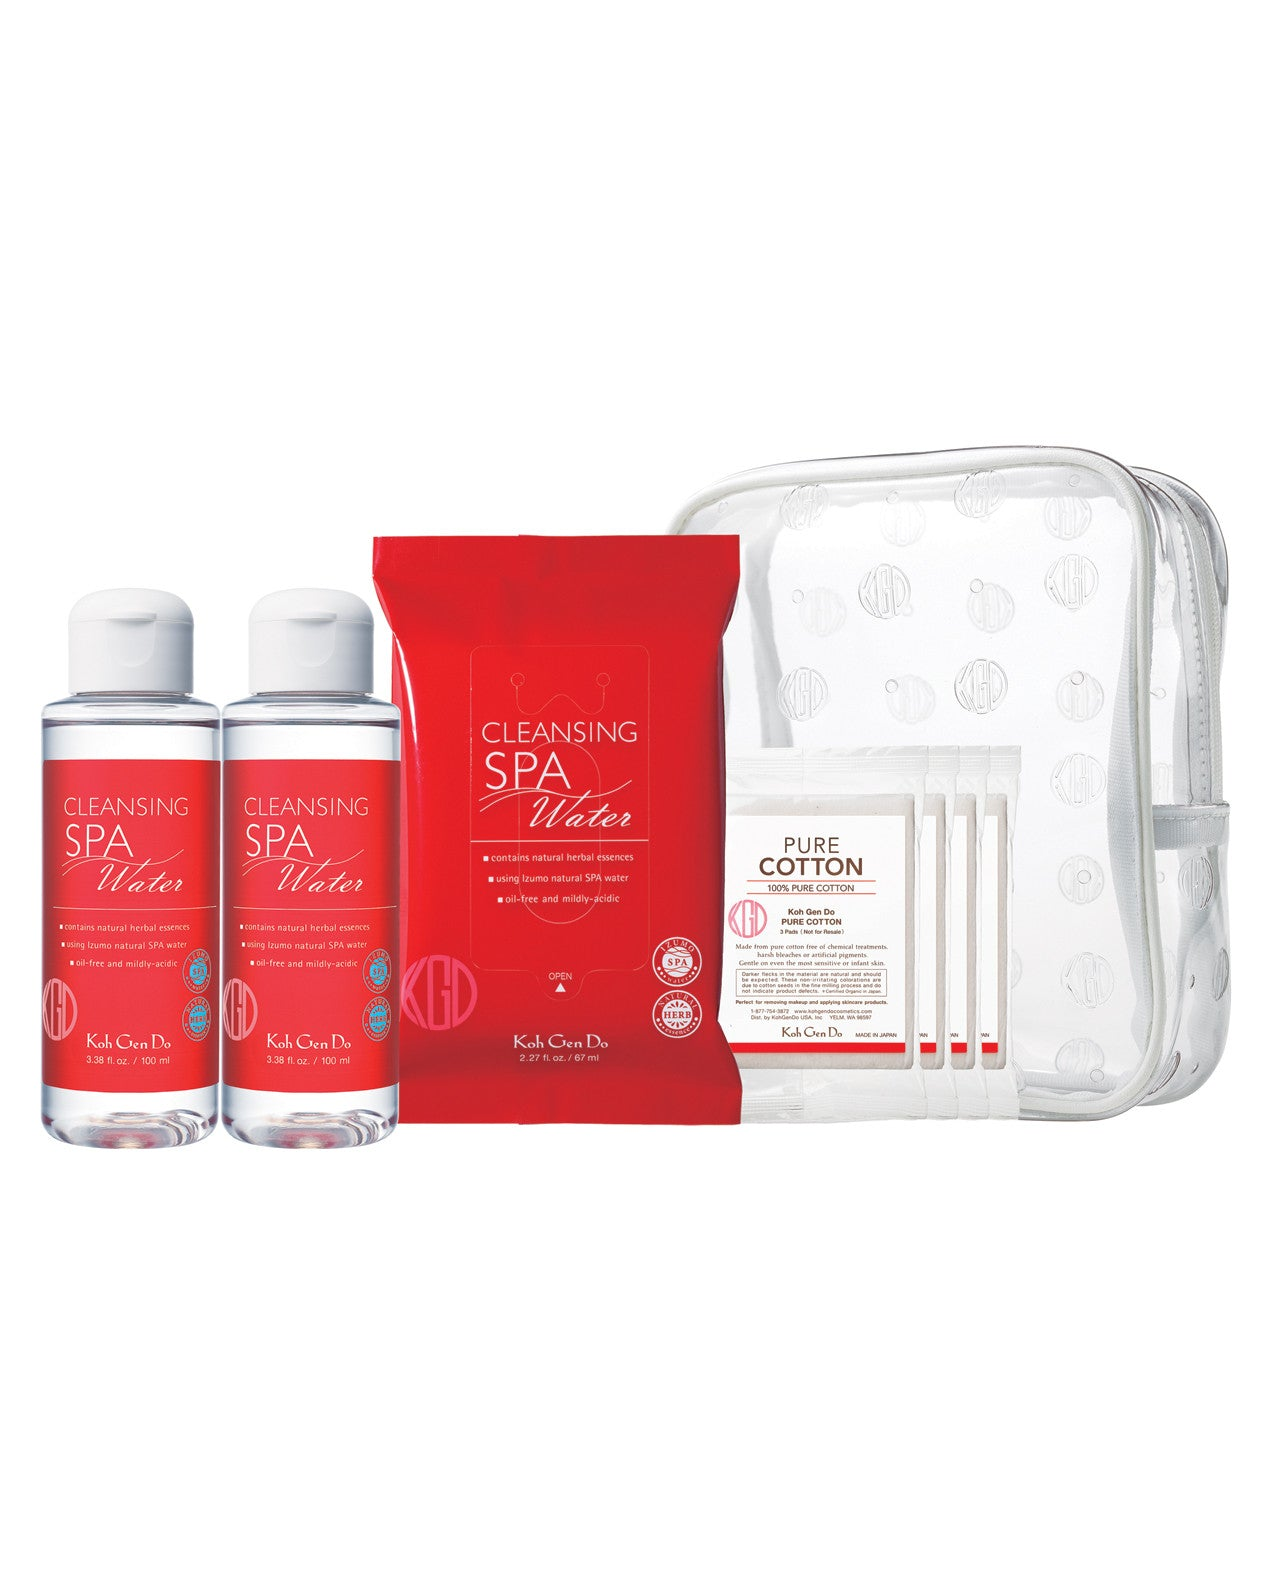 A travel size Cleansing Water set featuring two convenient methods to remove makeup and grime.